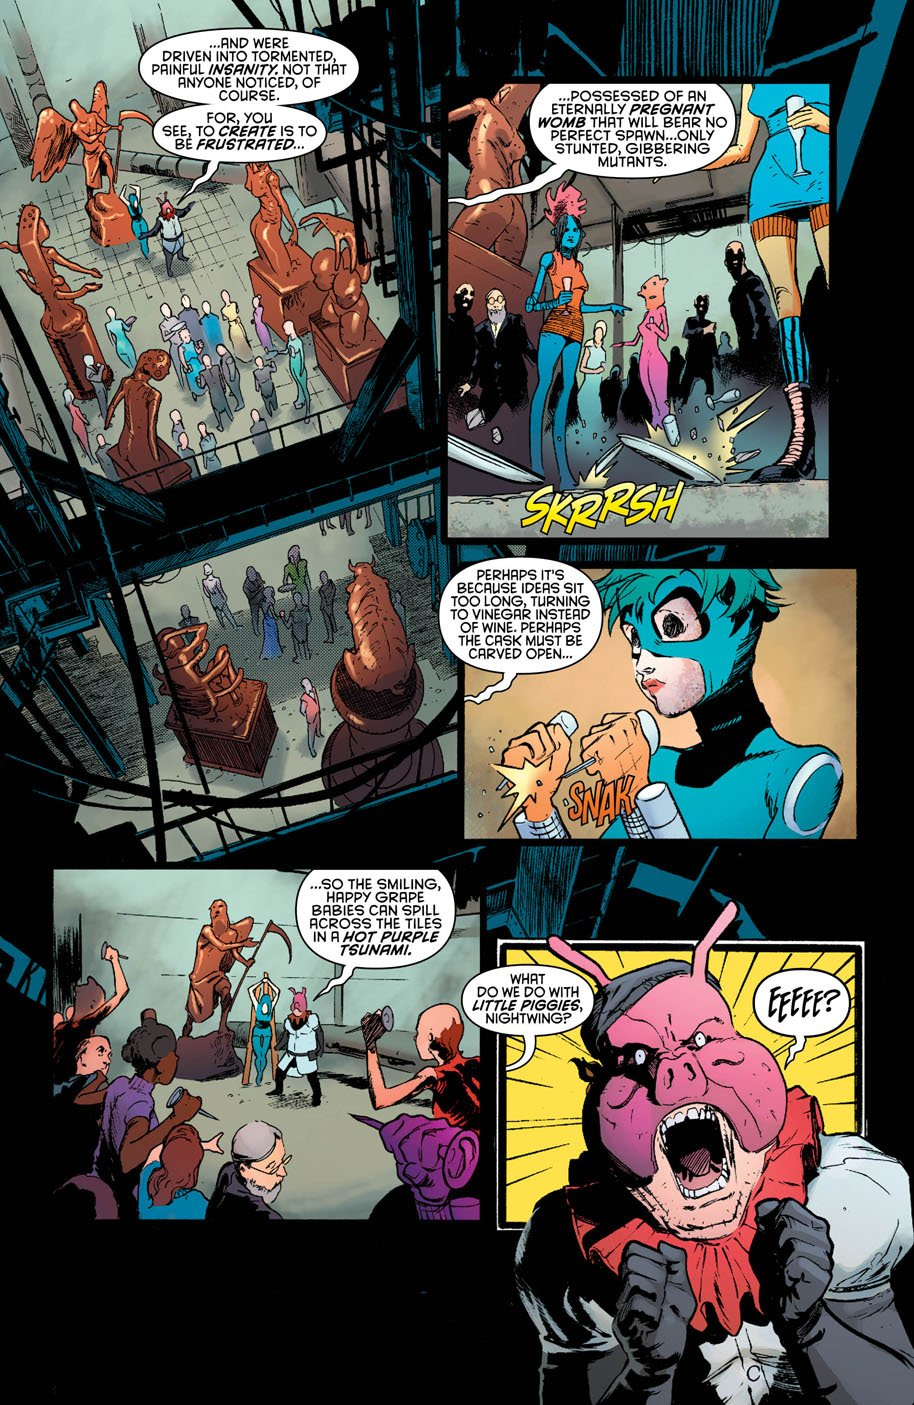 Nightwing 18 page 2